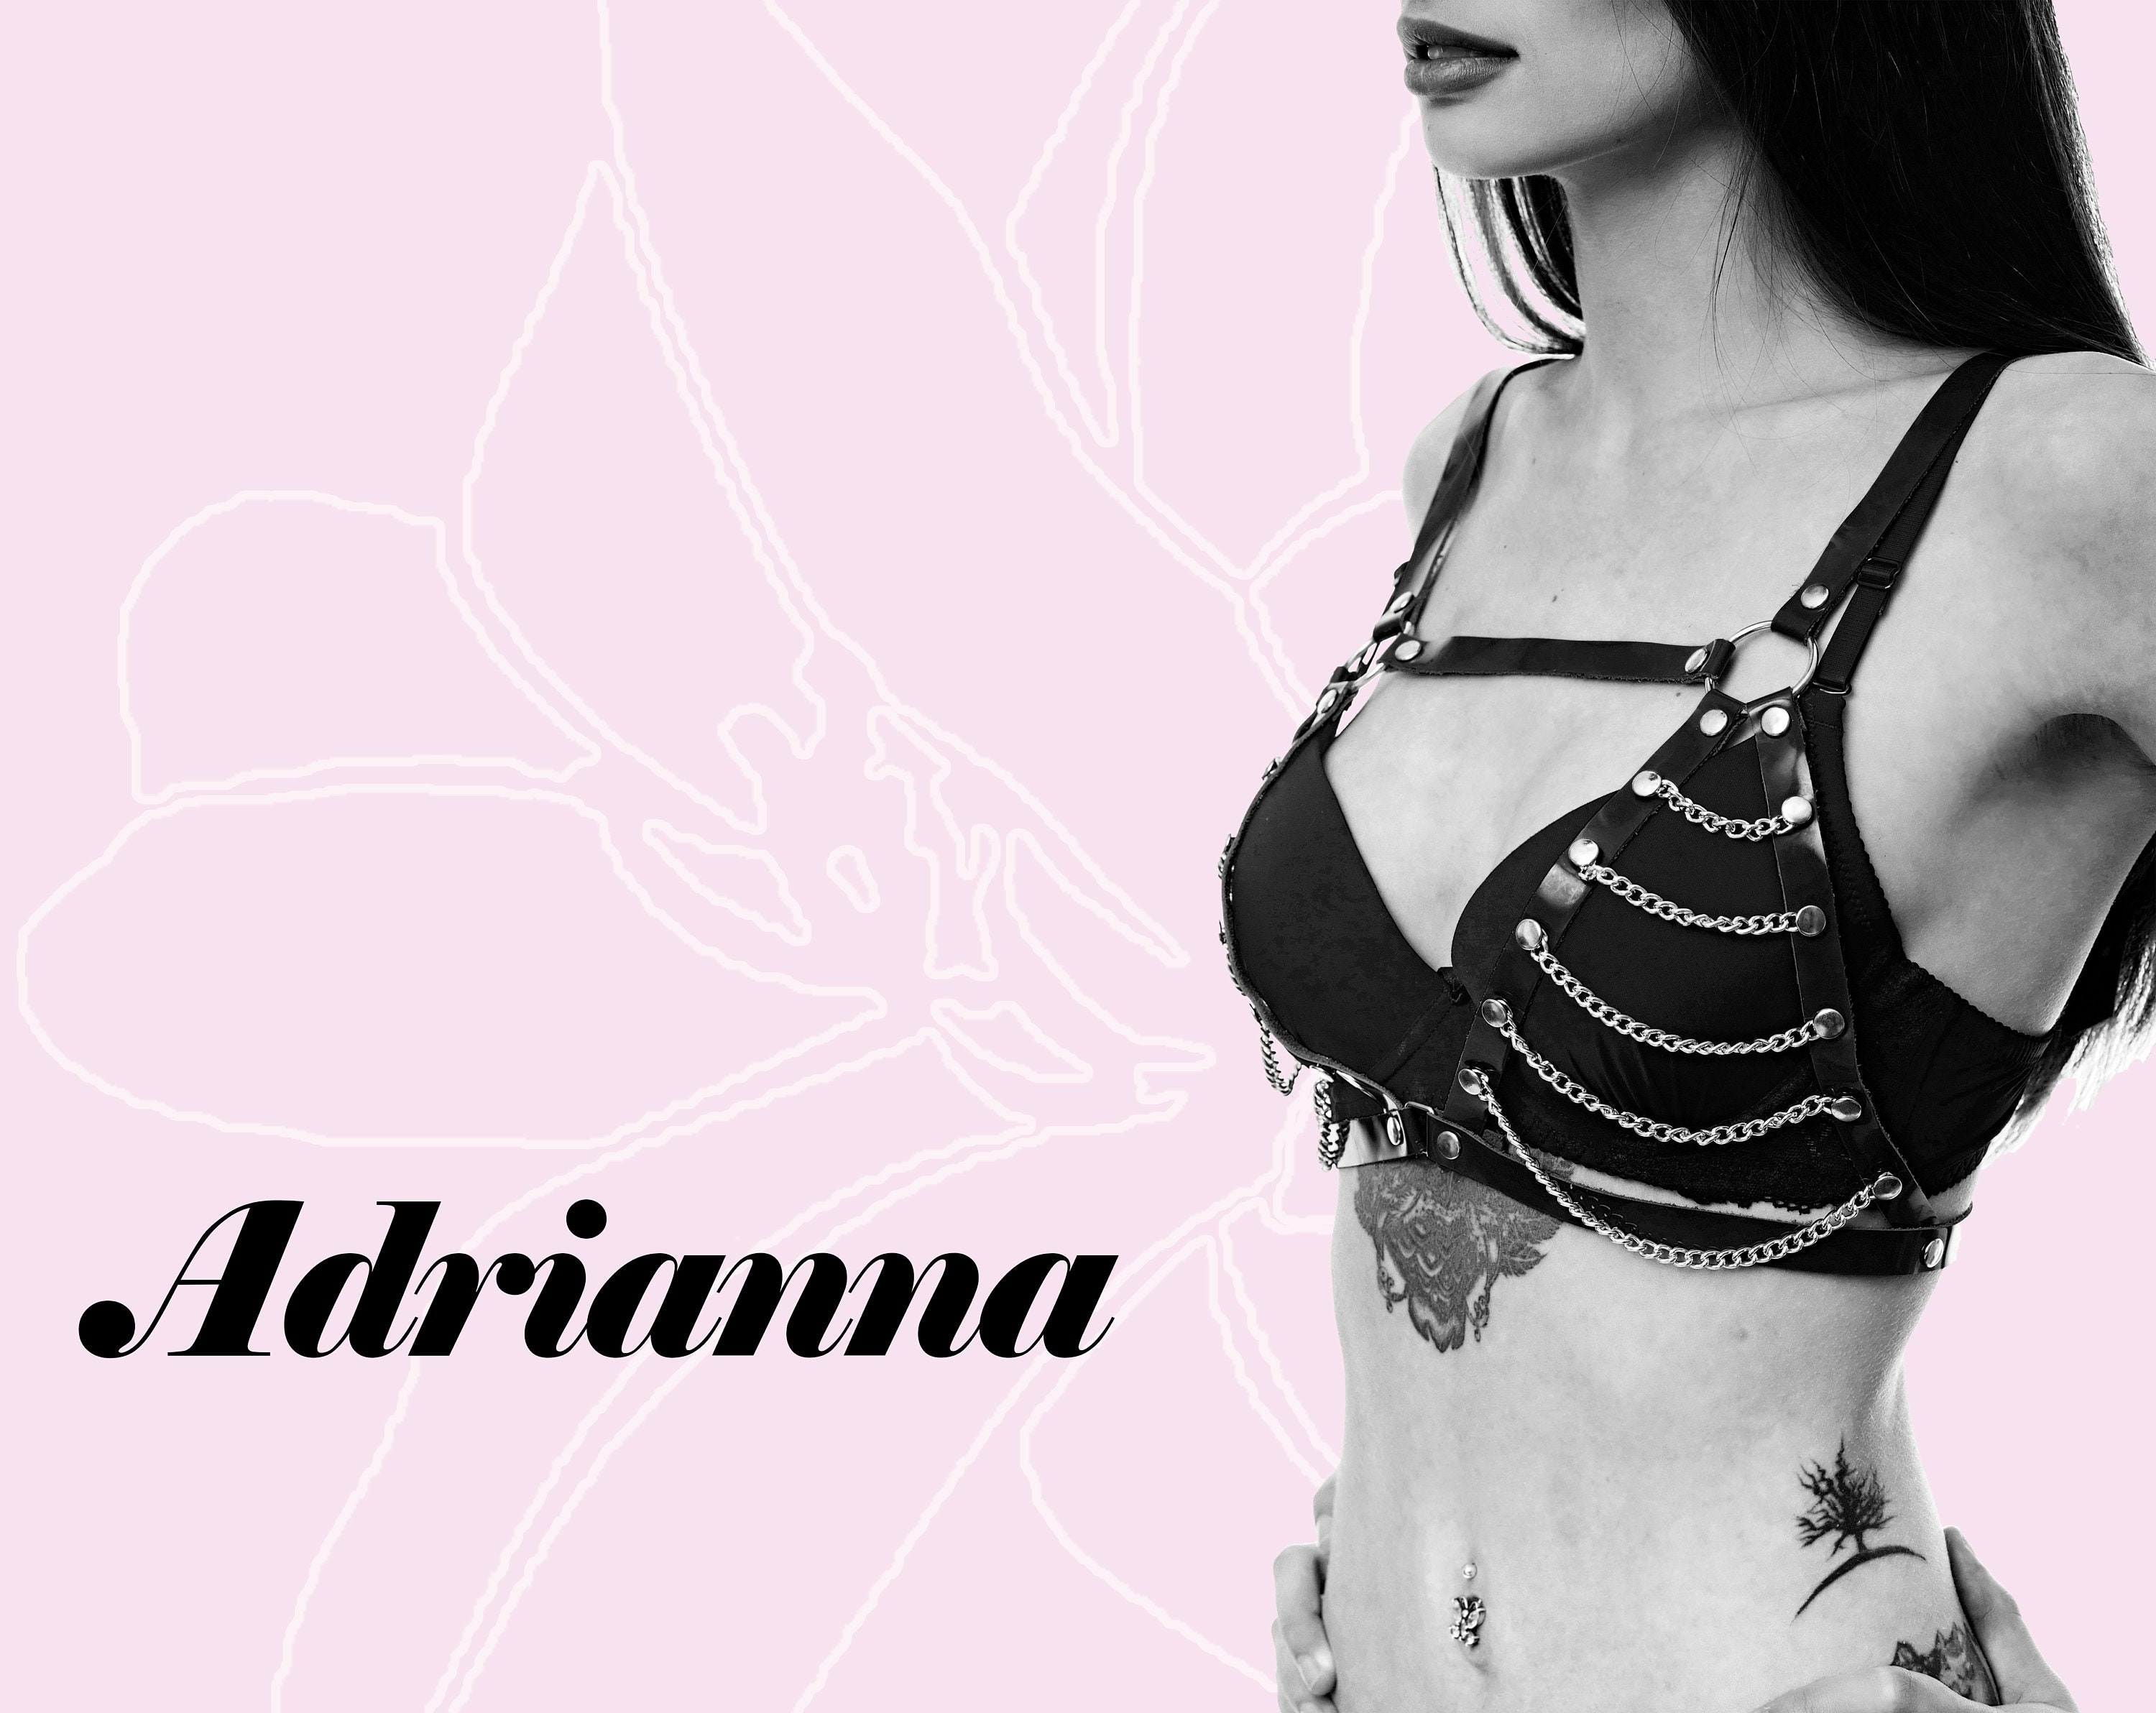 787a9dce7a9 Adrianna Chain Bra / harness sexy bralette gift for wife | Etsy